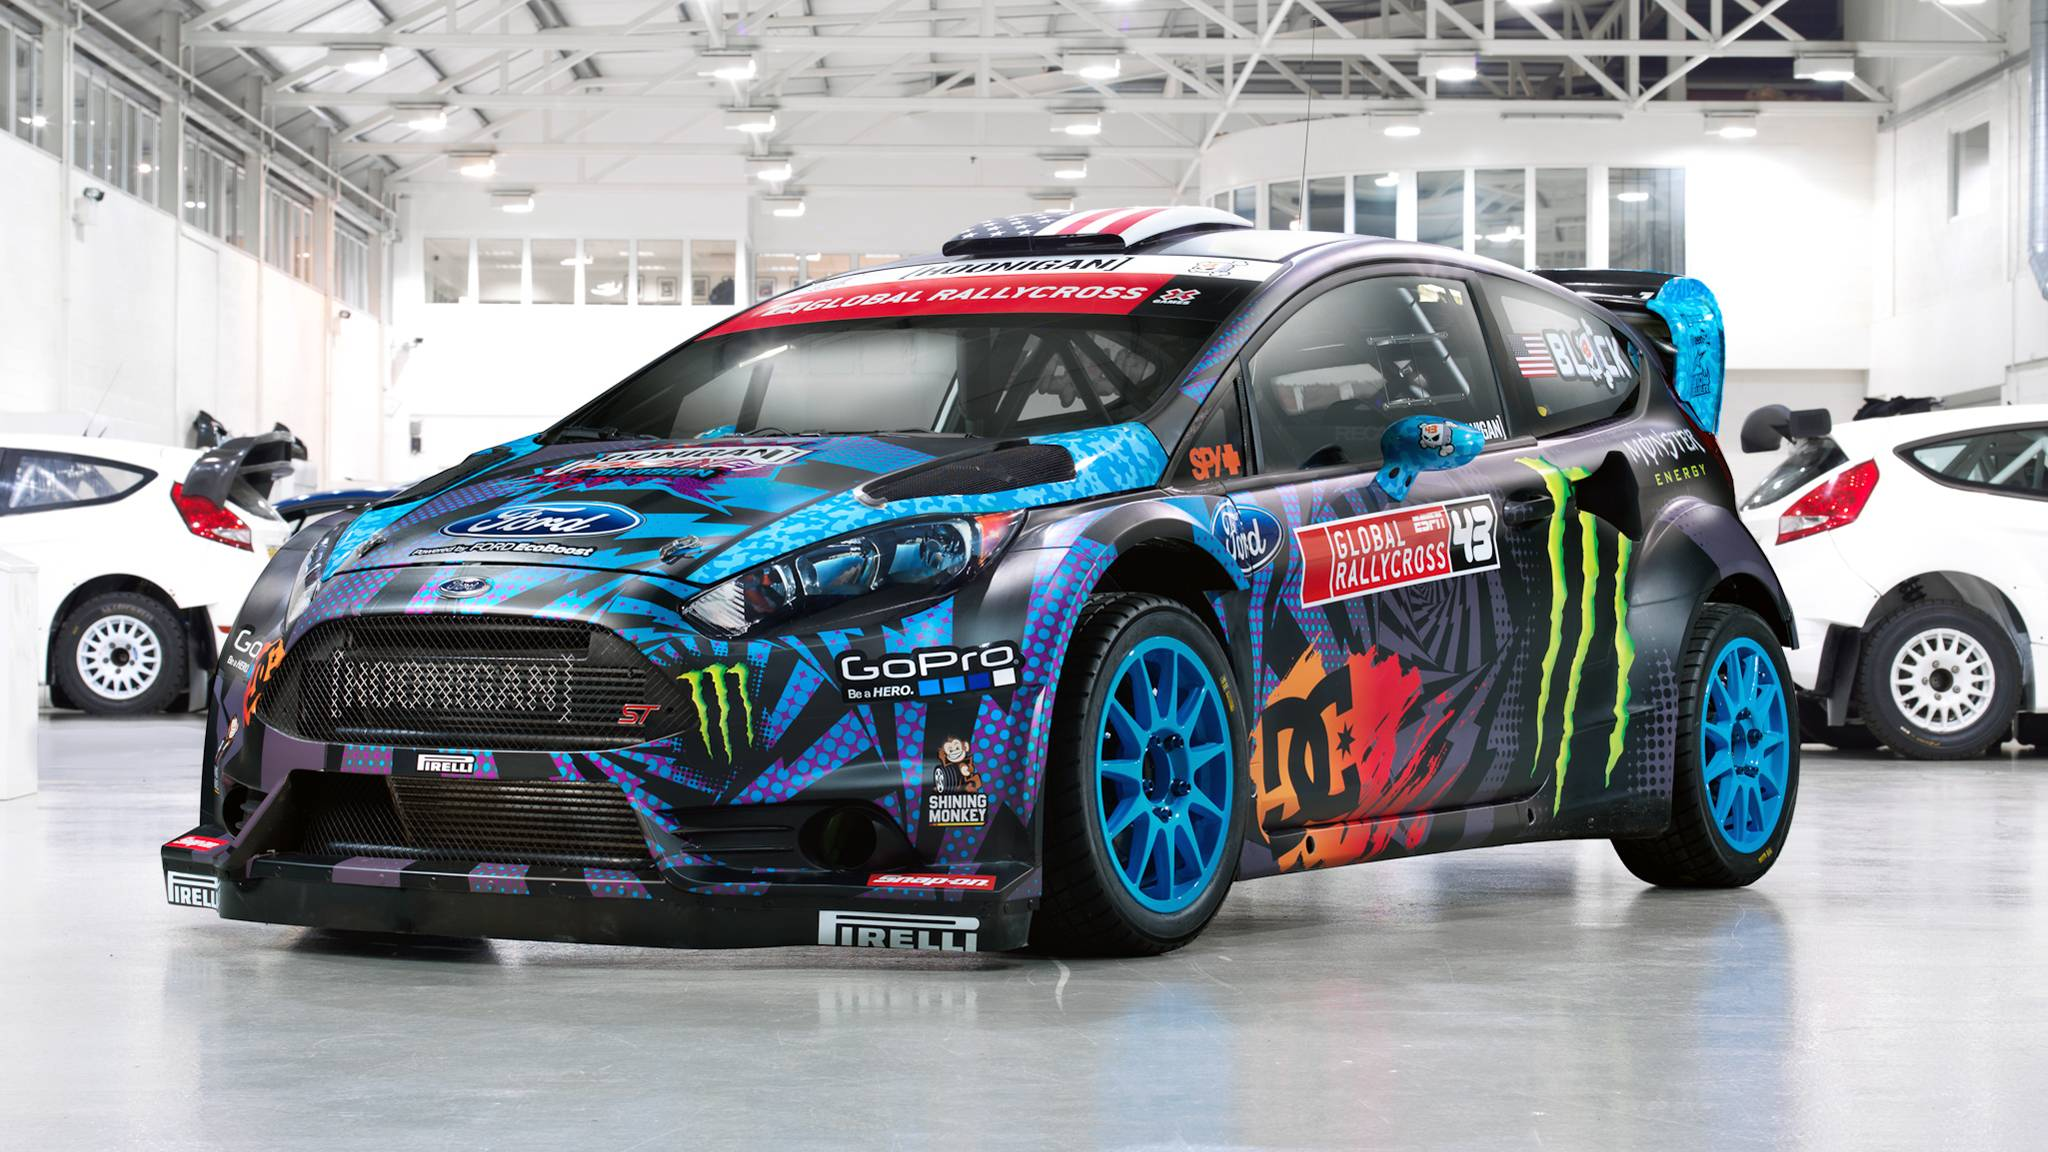 wallpapers ken block 2015 wallpaper cave. Black Bedroom Furniture Sets. Home Design Ideas